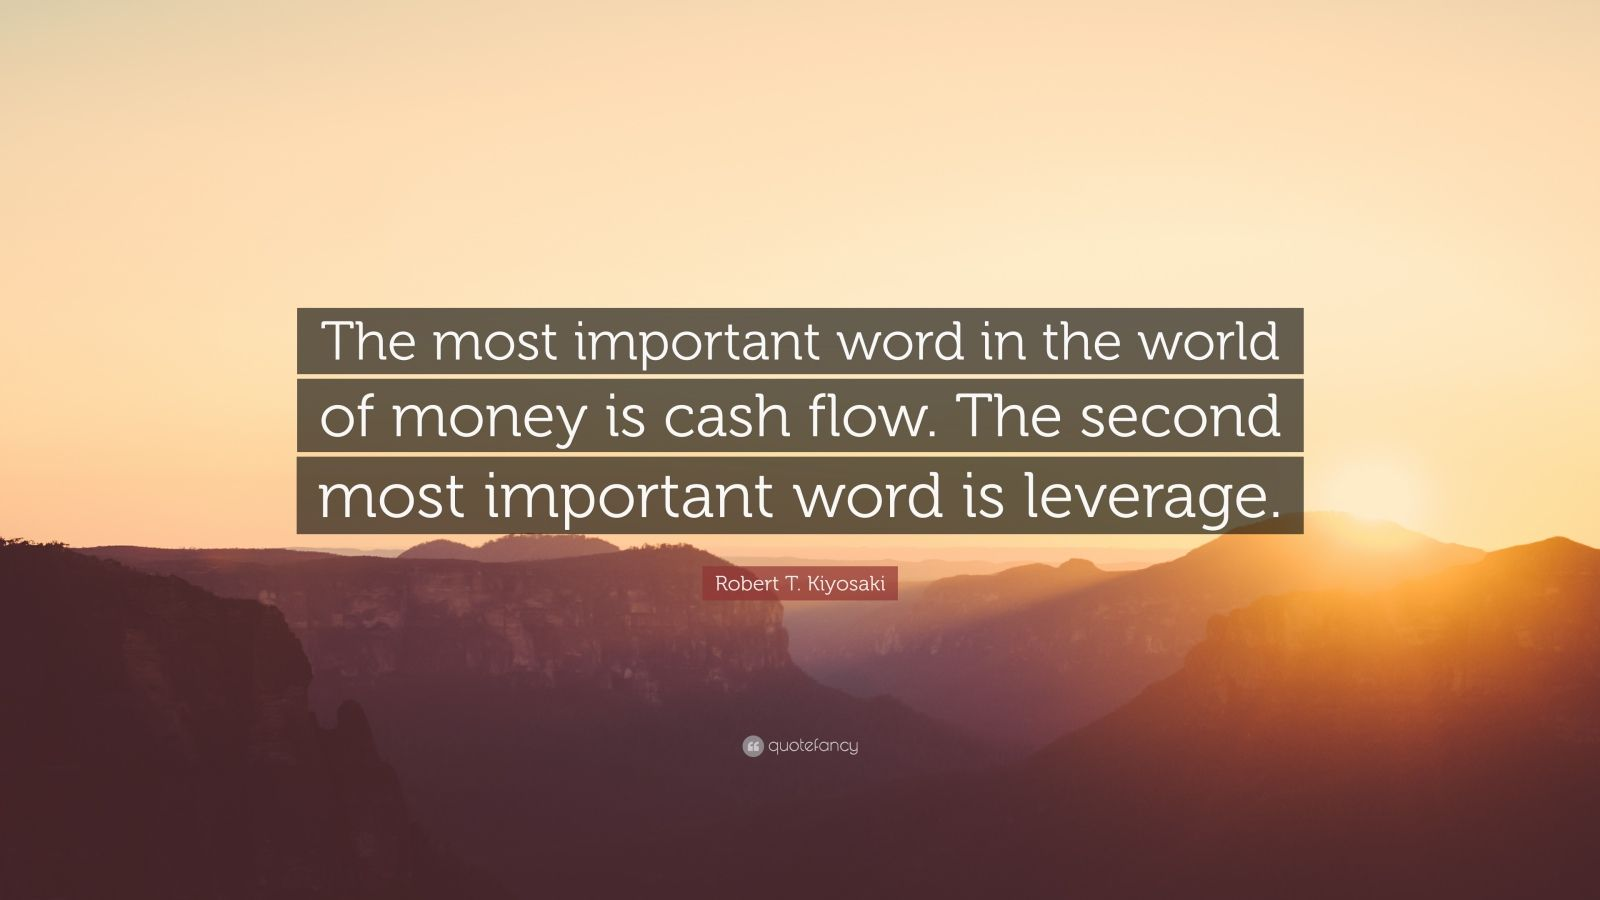 """Robert T. Kiyosaki Quote: """"The most important word in the world of money is cash flow. The second most important word is leverage."""""""